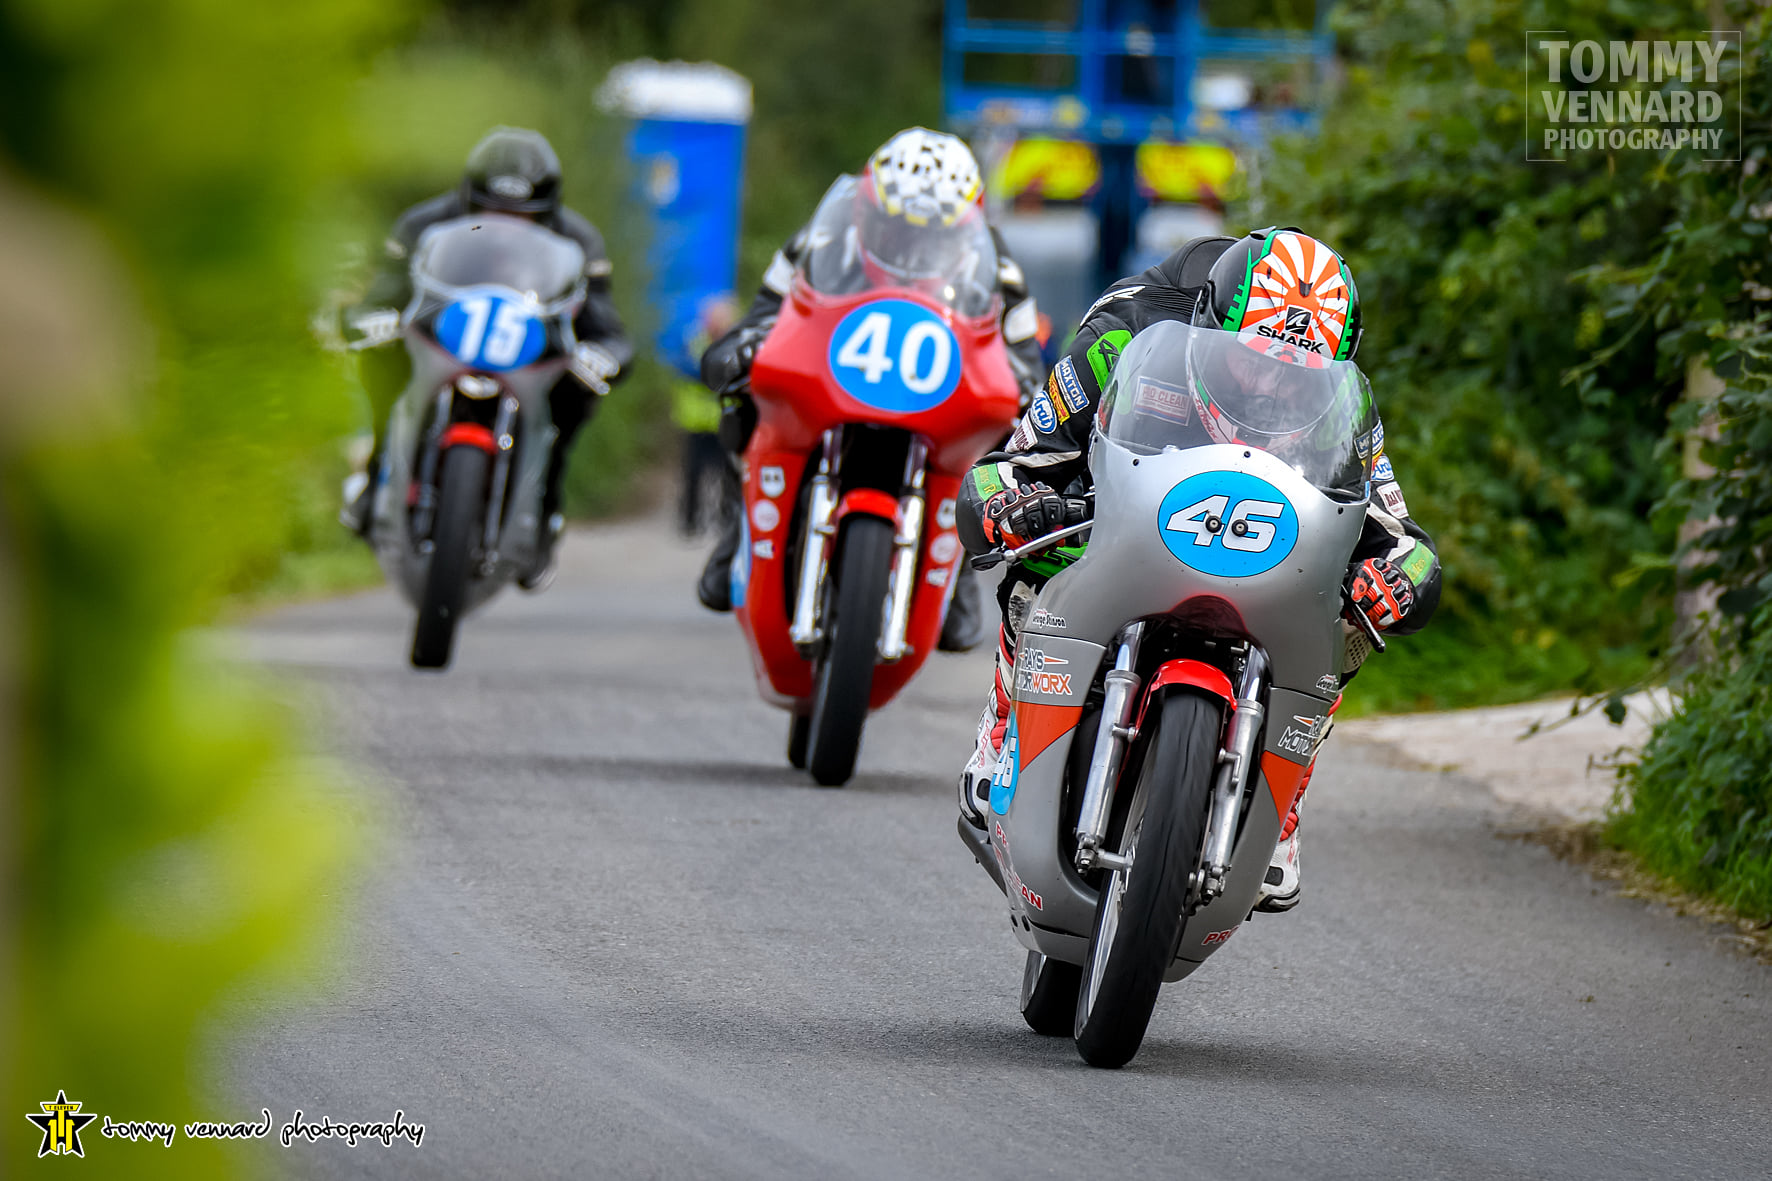 Viewpoint: Cookstown Organisers Show Up The Naysayers, Deserve Nothing But Huge Respect